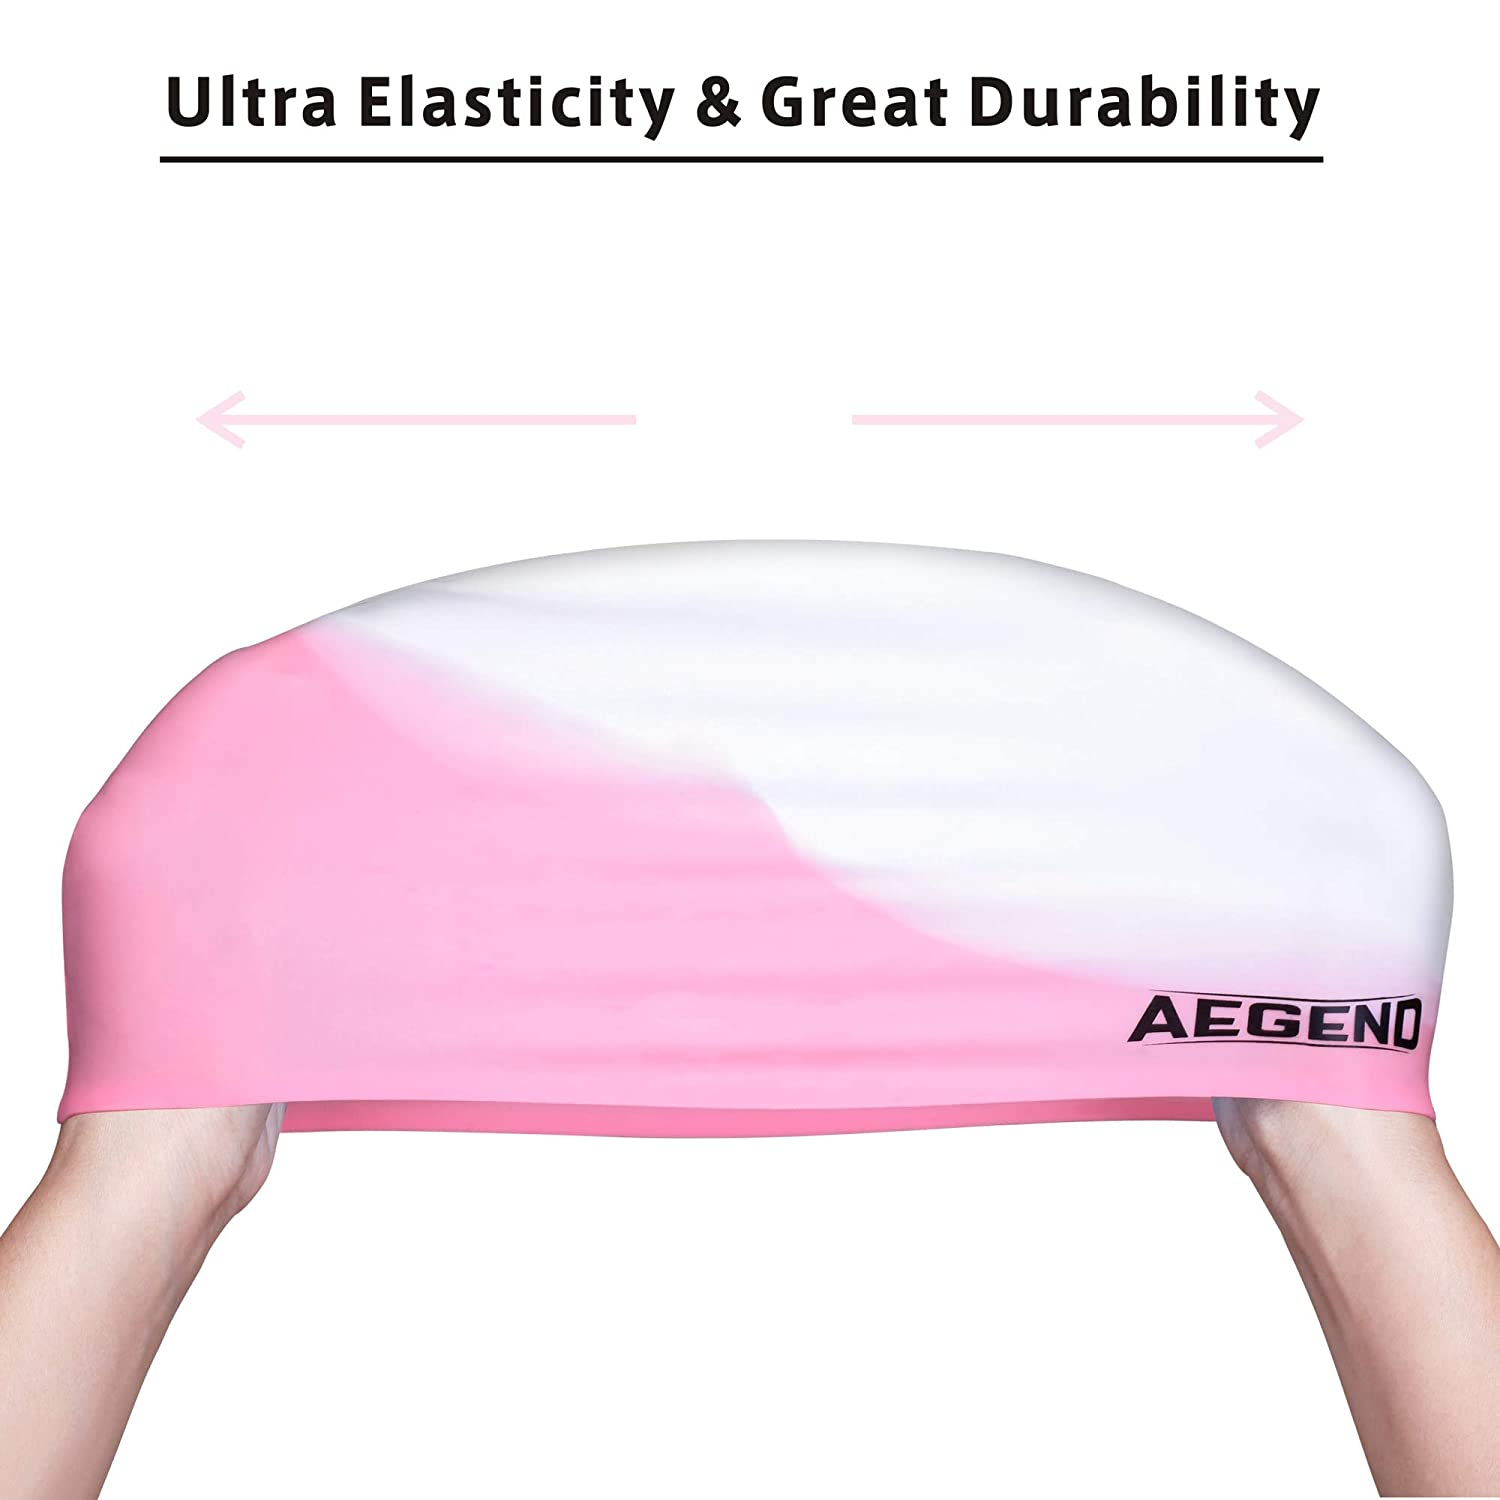 Durable Silicone Swimming Cap for Kids Youths Comfortable Fit for Long Hair and Short Hair aegend 2 Pack Swim Cap for 3 Colors Age 3-12